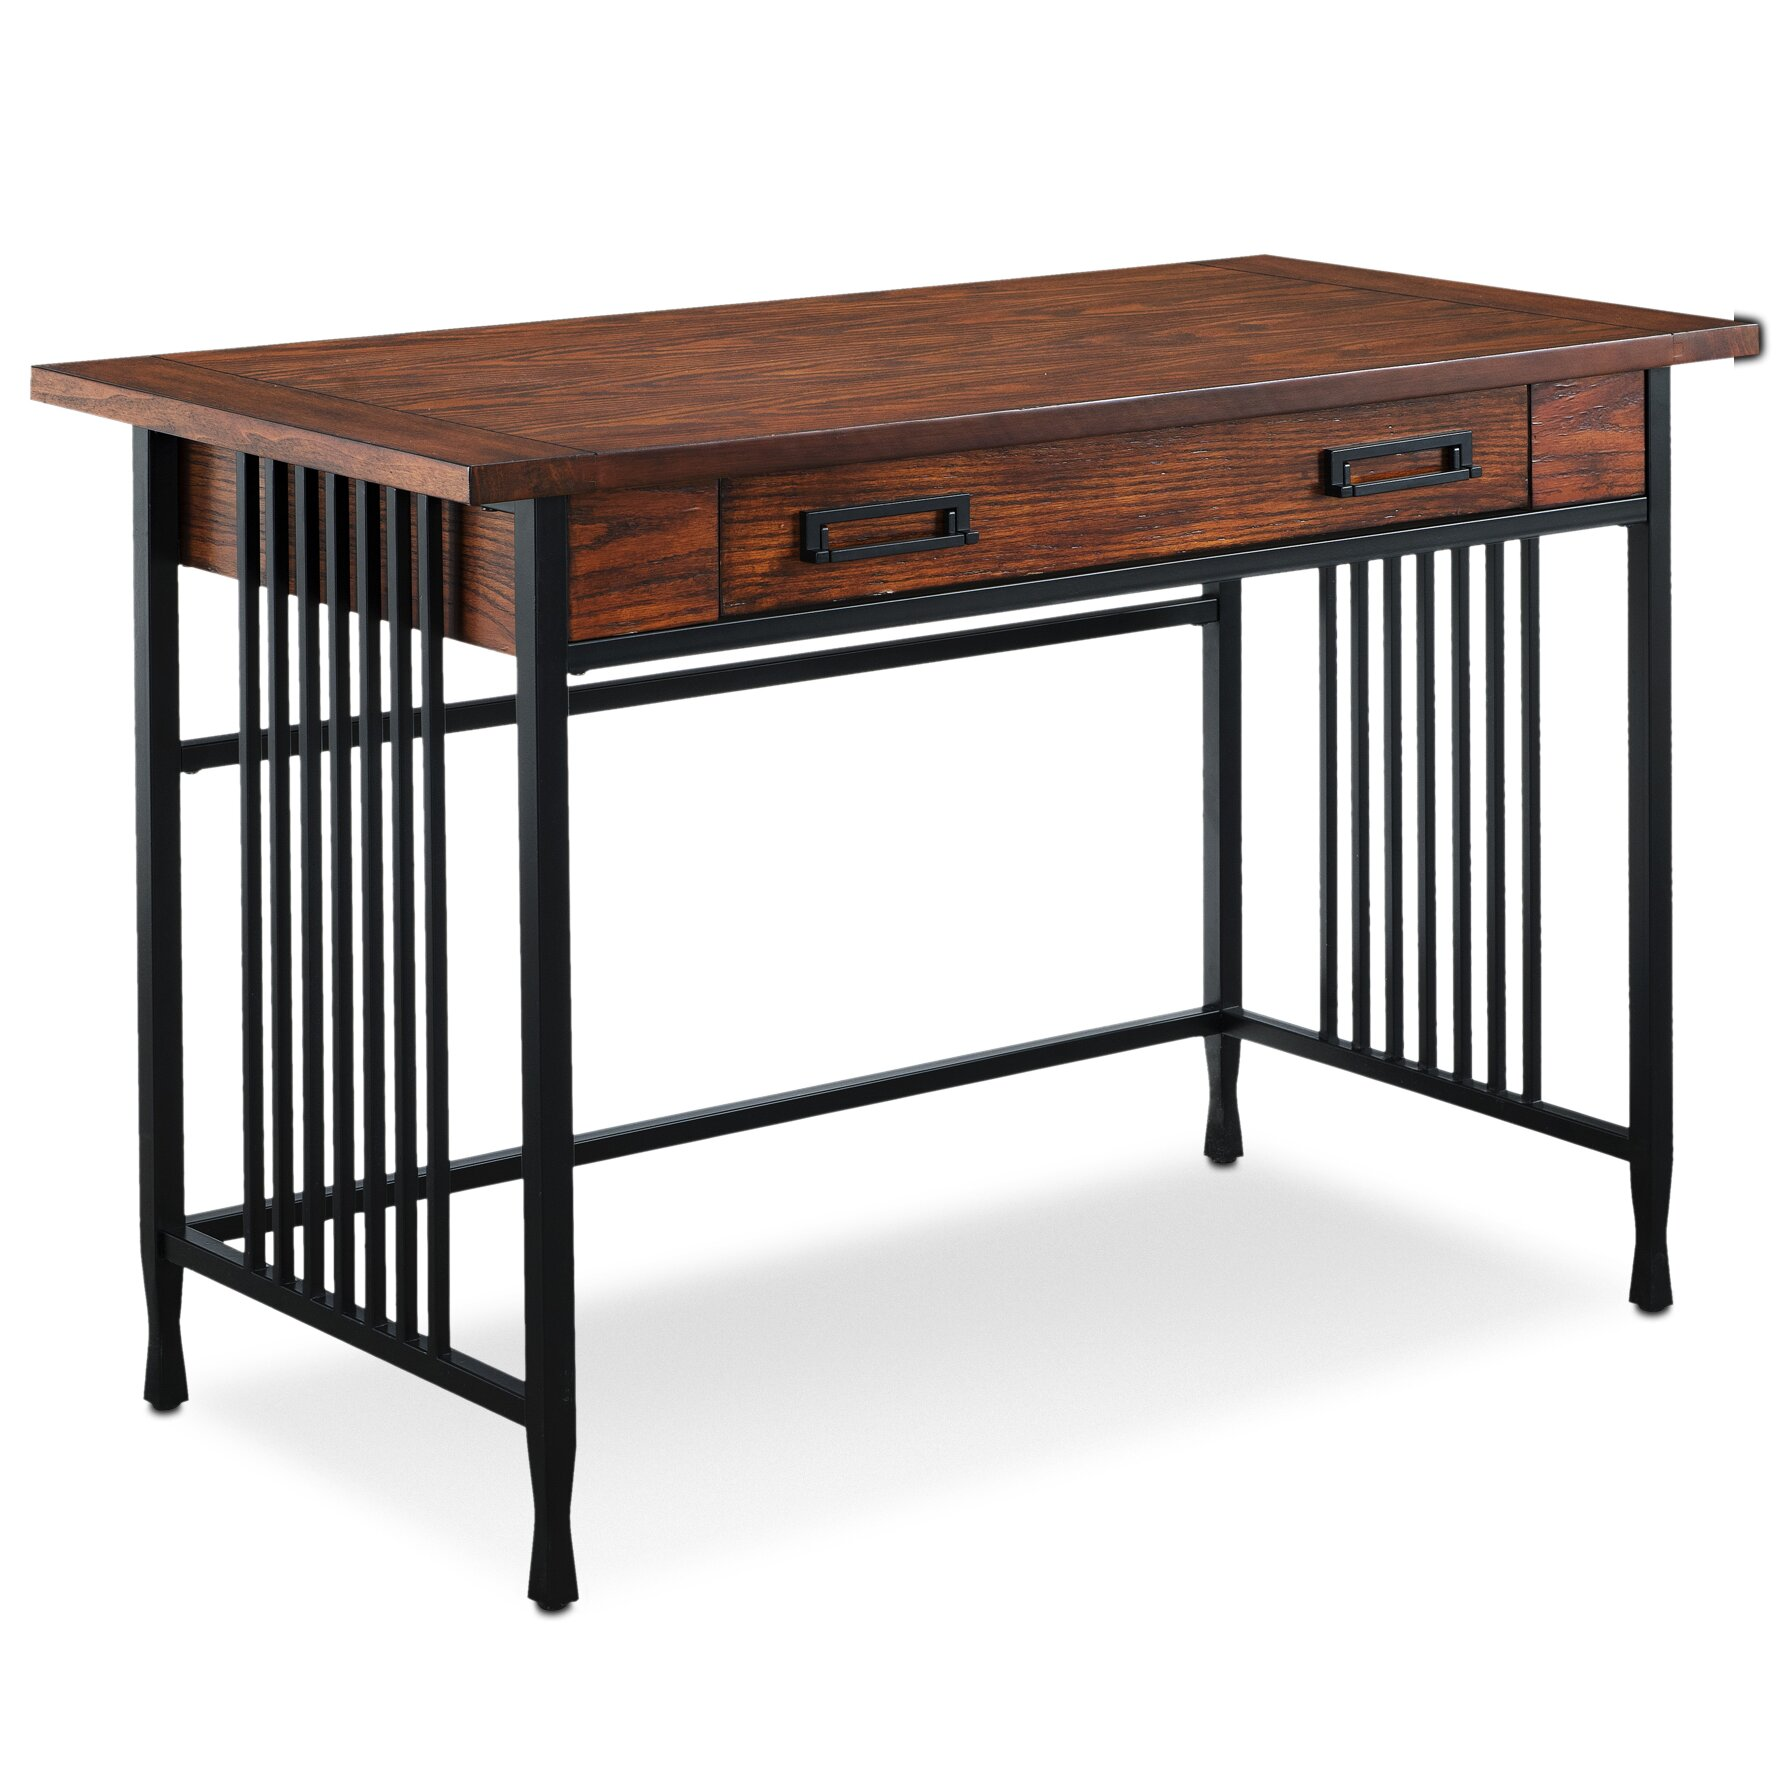 Leick Ironcraft Writing Desk amp Reviews Wayfair : Ironcraft Writing Desk 11200 from www.wayfair.com size 1791 x 1791 jpeg 369kB